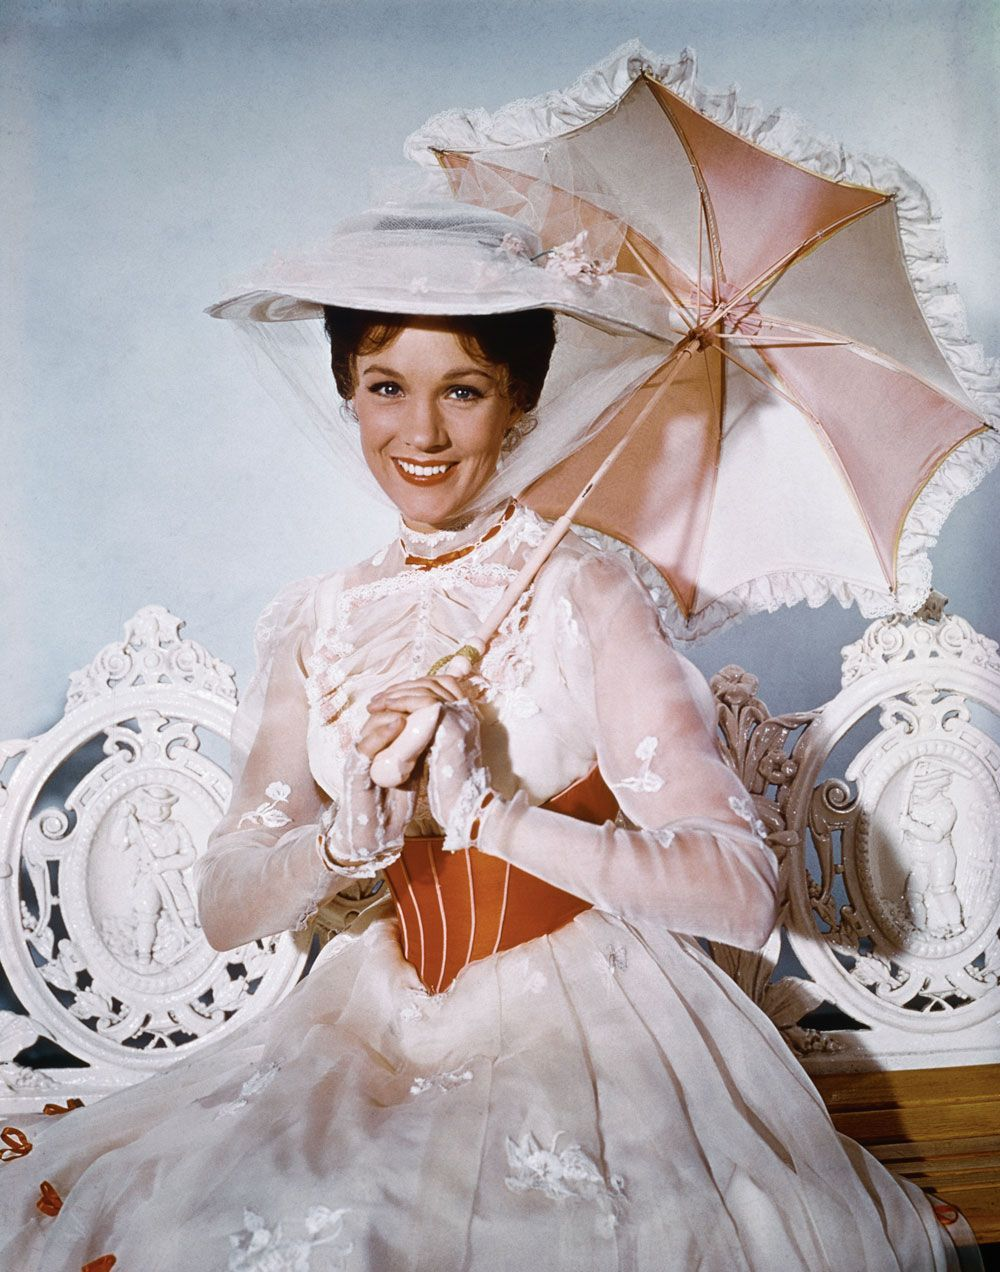 101 most iconic movie dresses that defined Hollywood is part of Mary poppins dress, Iconic movies, Mary poppins 1964, Mary poppins jolly holiday, Mary poppins, Julie andrews - From Marilyn's red sequins, to JLo's Maid in Manhattan moment